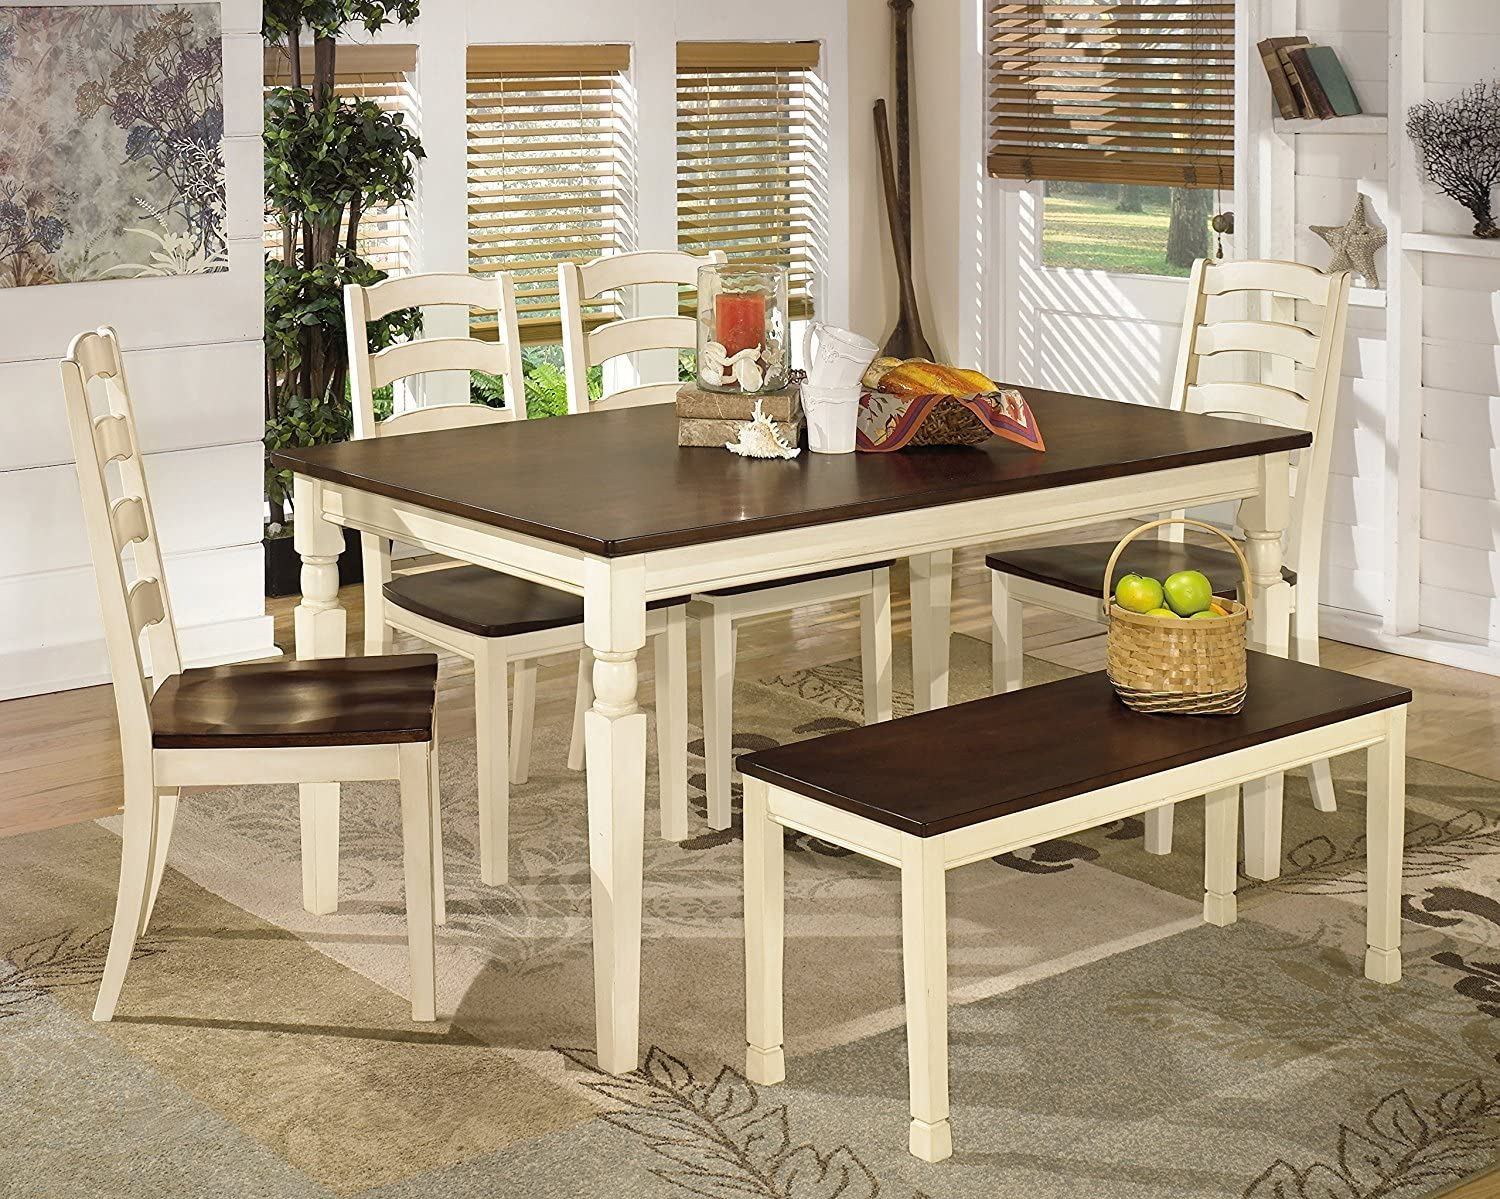 Ashley Furniture Signature Design - Whitesburg 6-Piece Dining Room Set -  Includes Rectangular Table, Bench & 4 Chairs